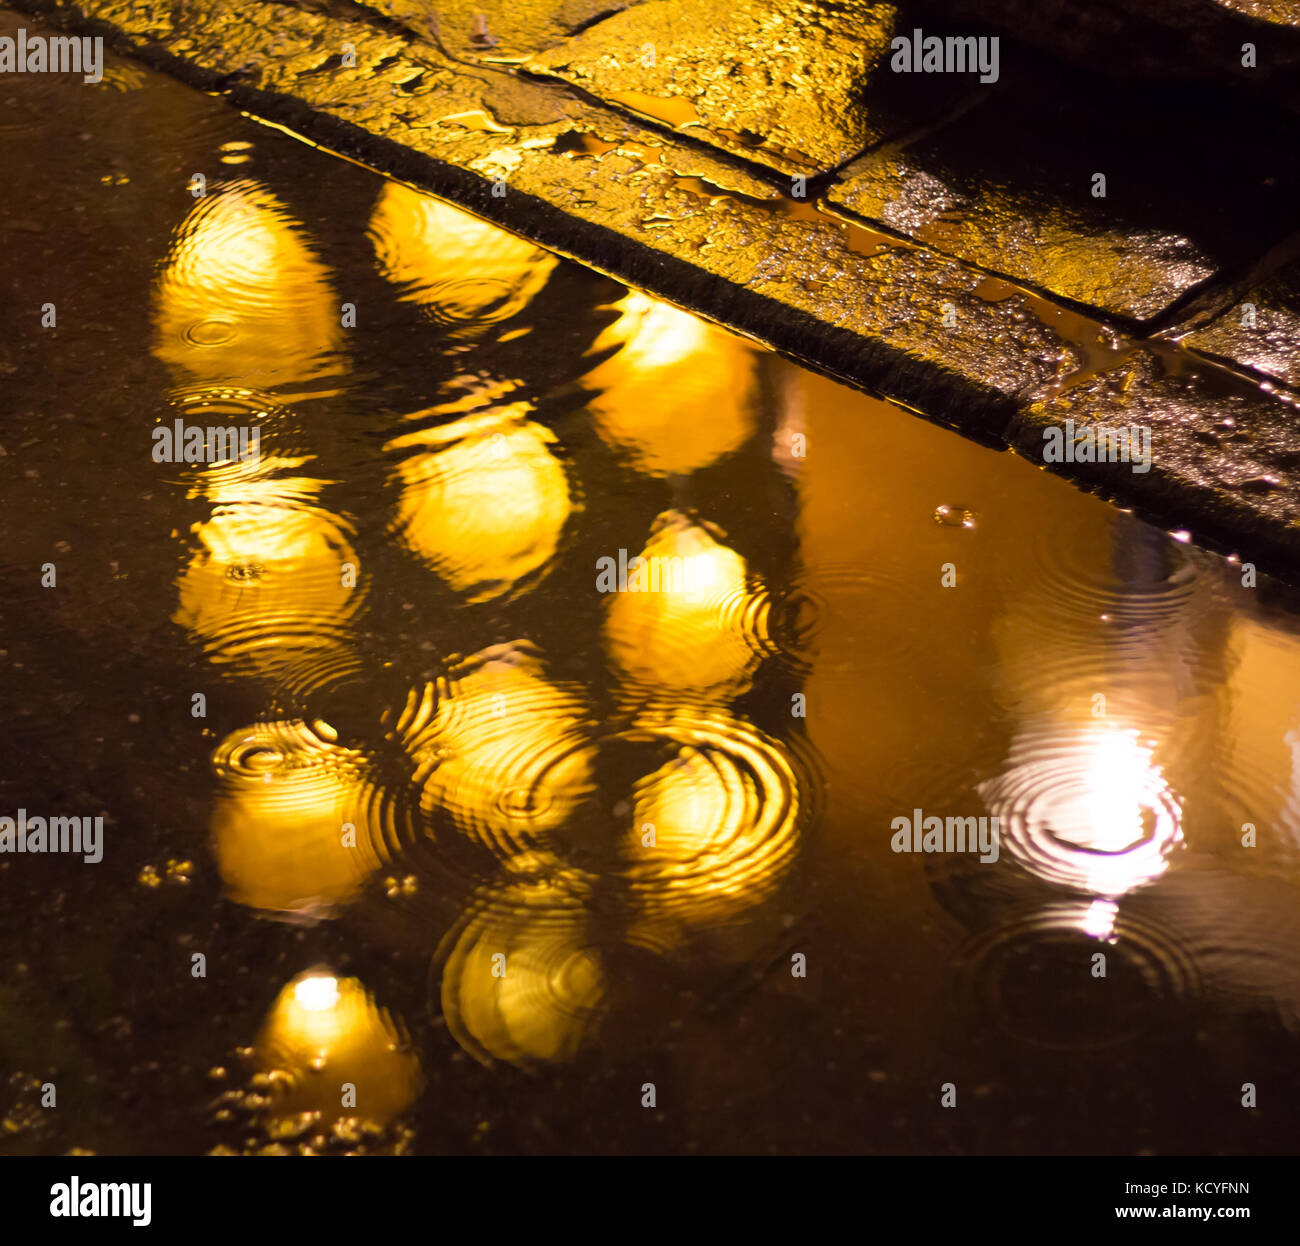 reflection of lights on wet rainy street - Stock Image